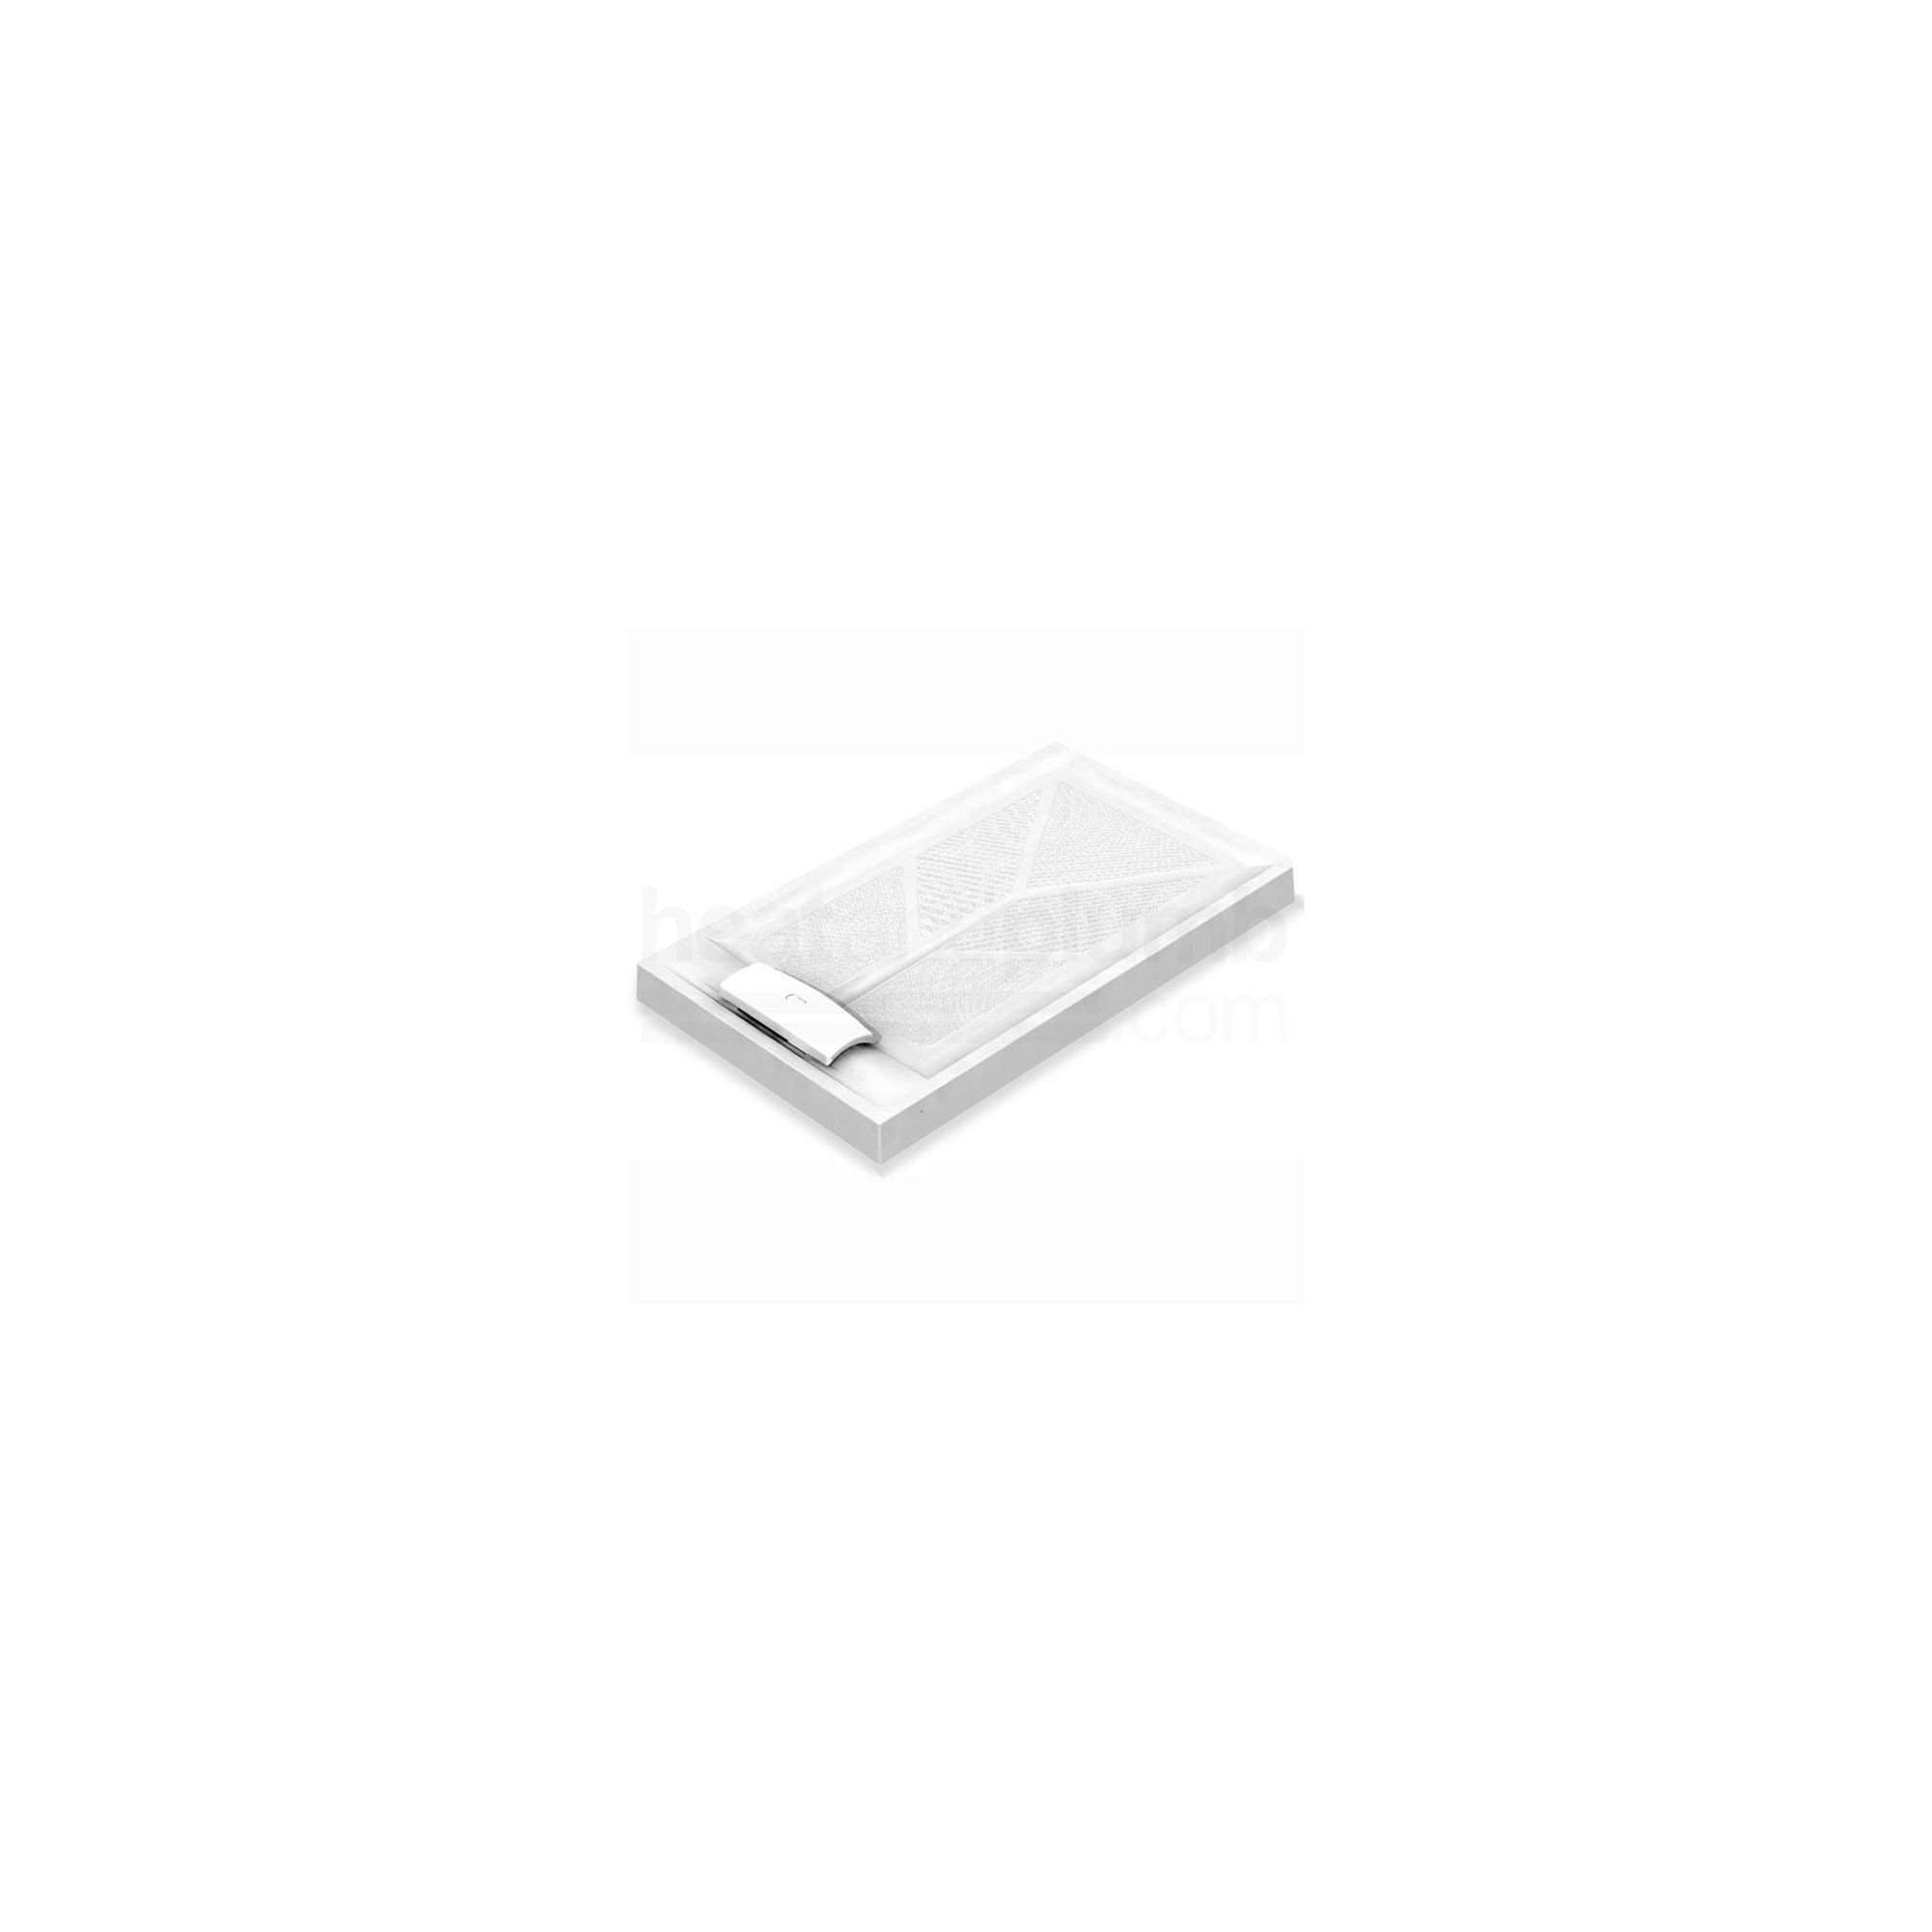 AKW Sulby Rectangular Shower Tray 1800mm x 700mm at Tesco Direct